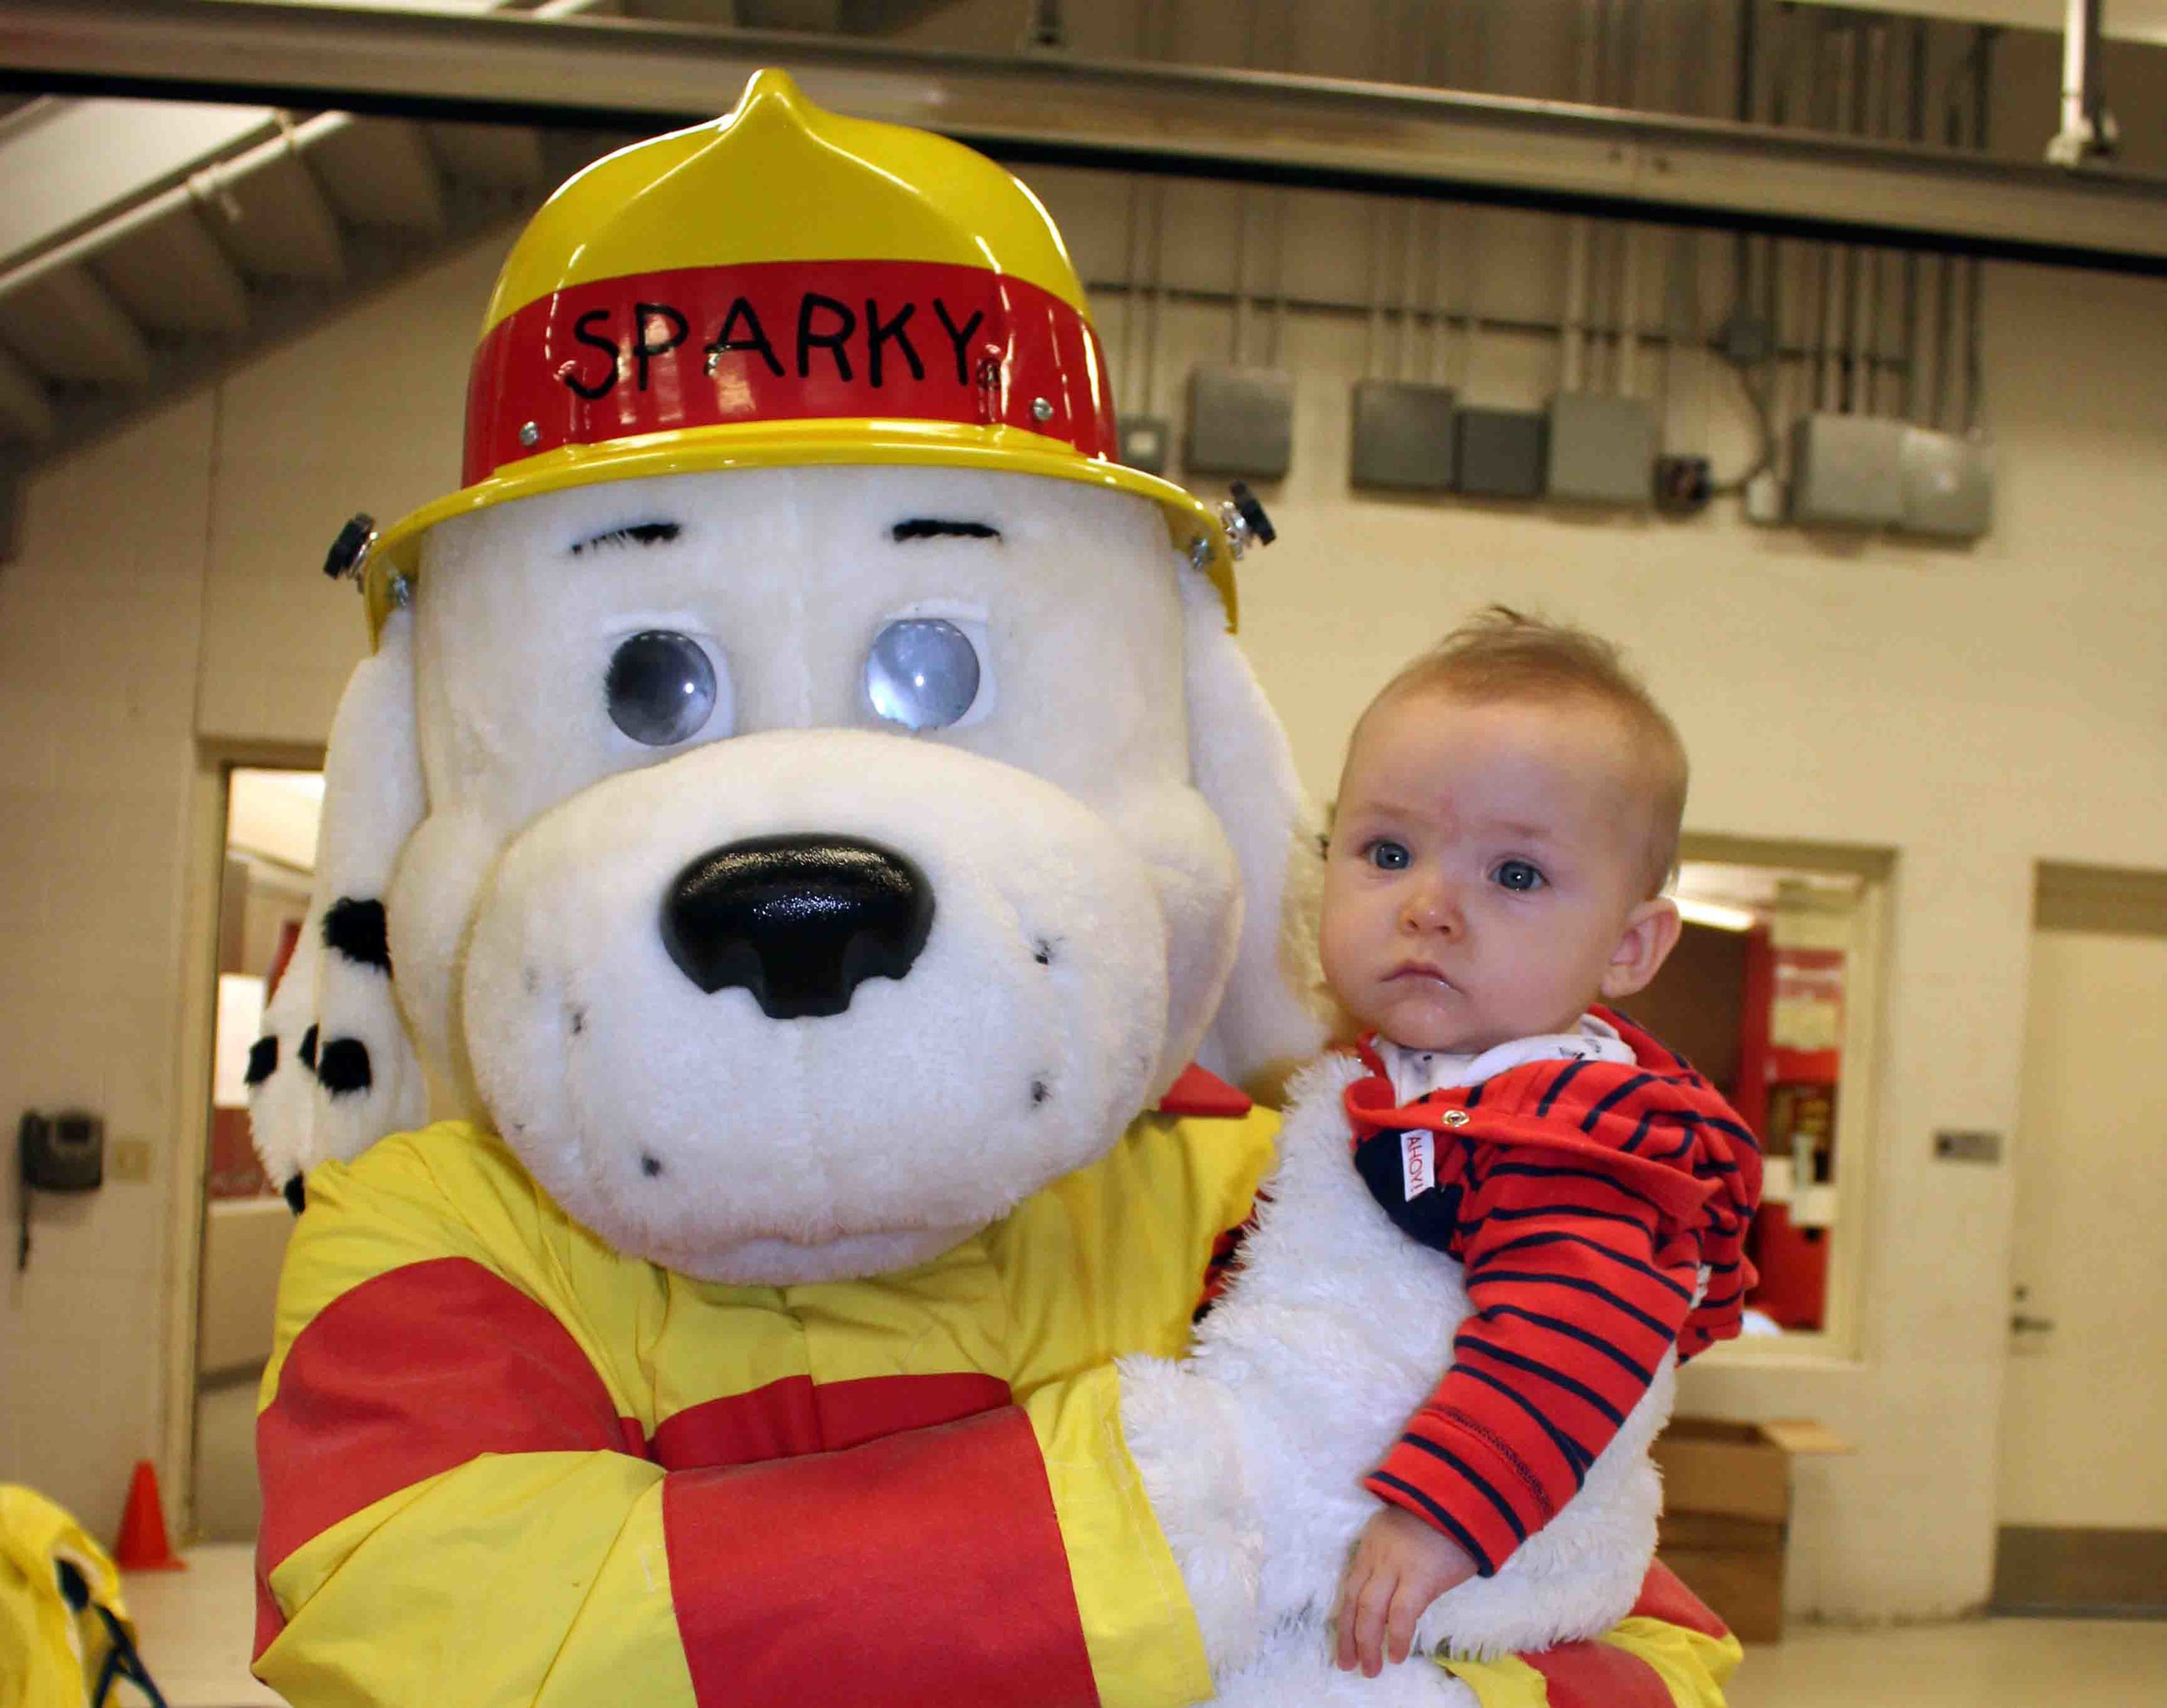 Tucker Rounsavall enjoyed snuggling with Sparky. Tucker is the youngest grandson of Dawnelle Collings, City of Murphy Fire Administrative Assistant.